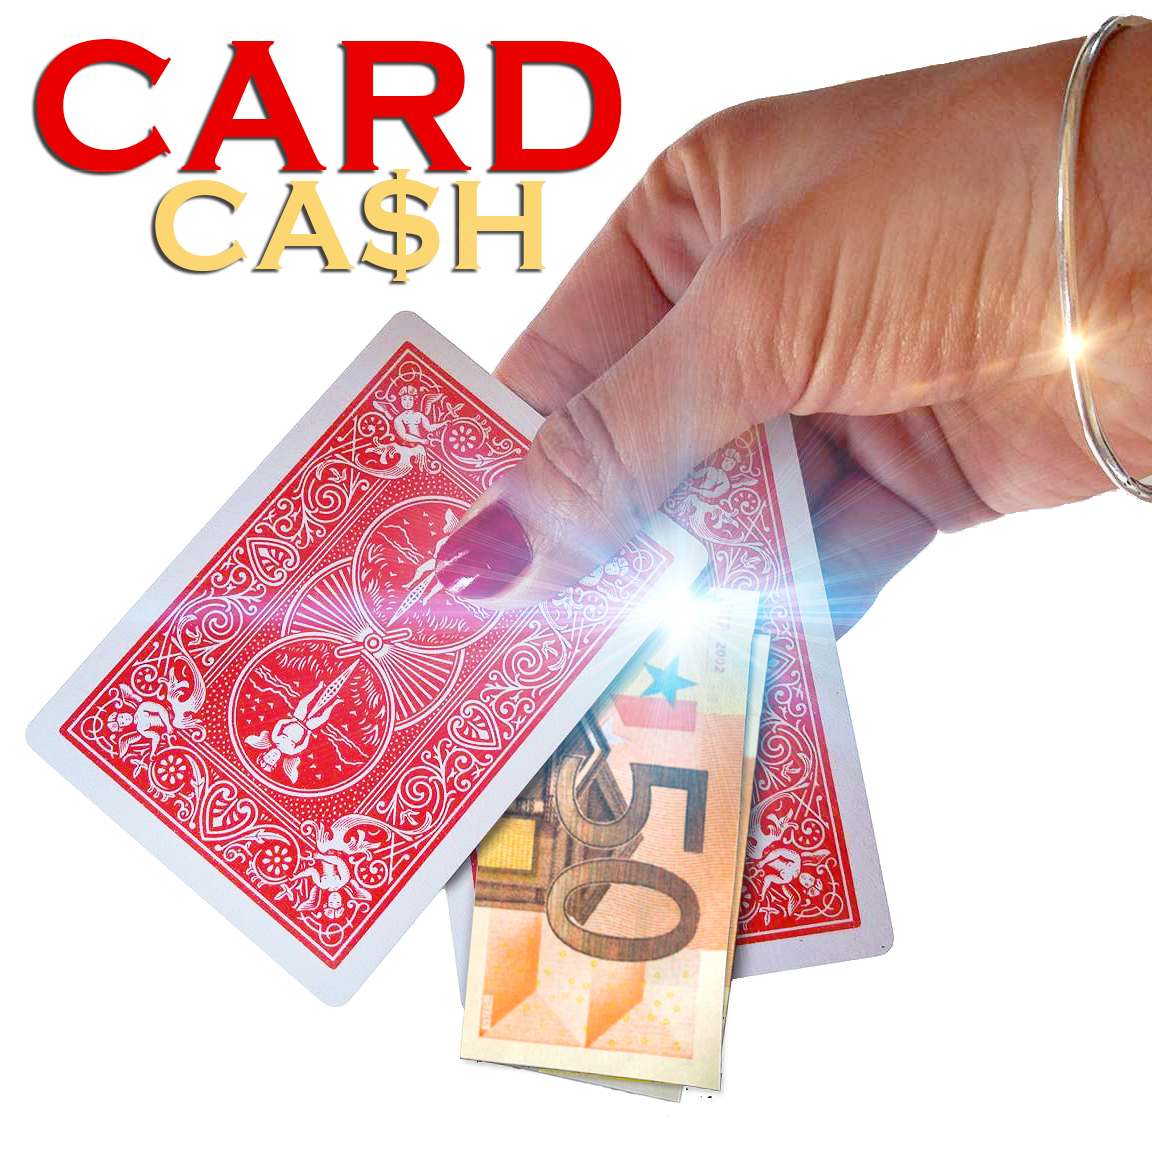 Card cash - LAFLOUK